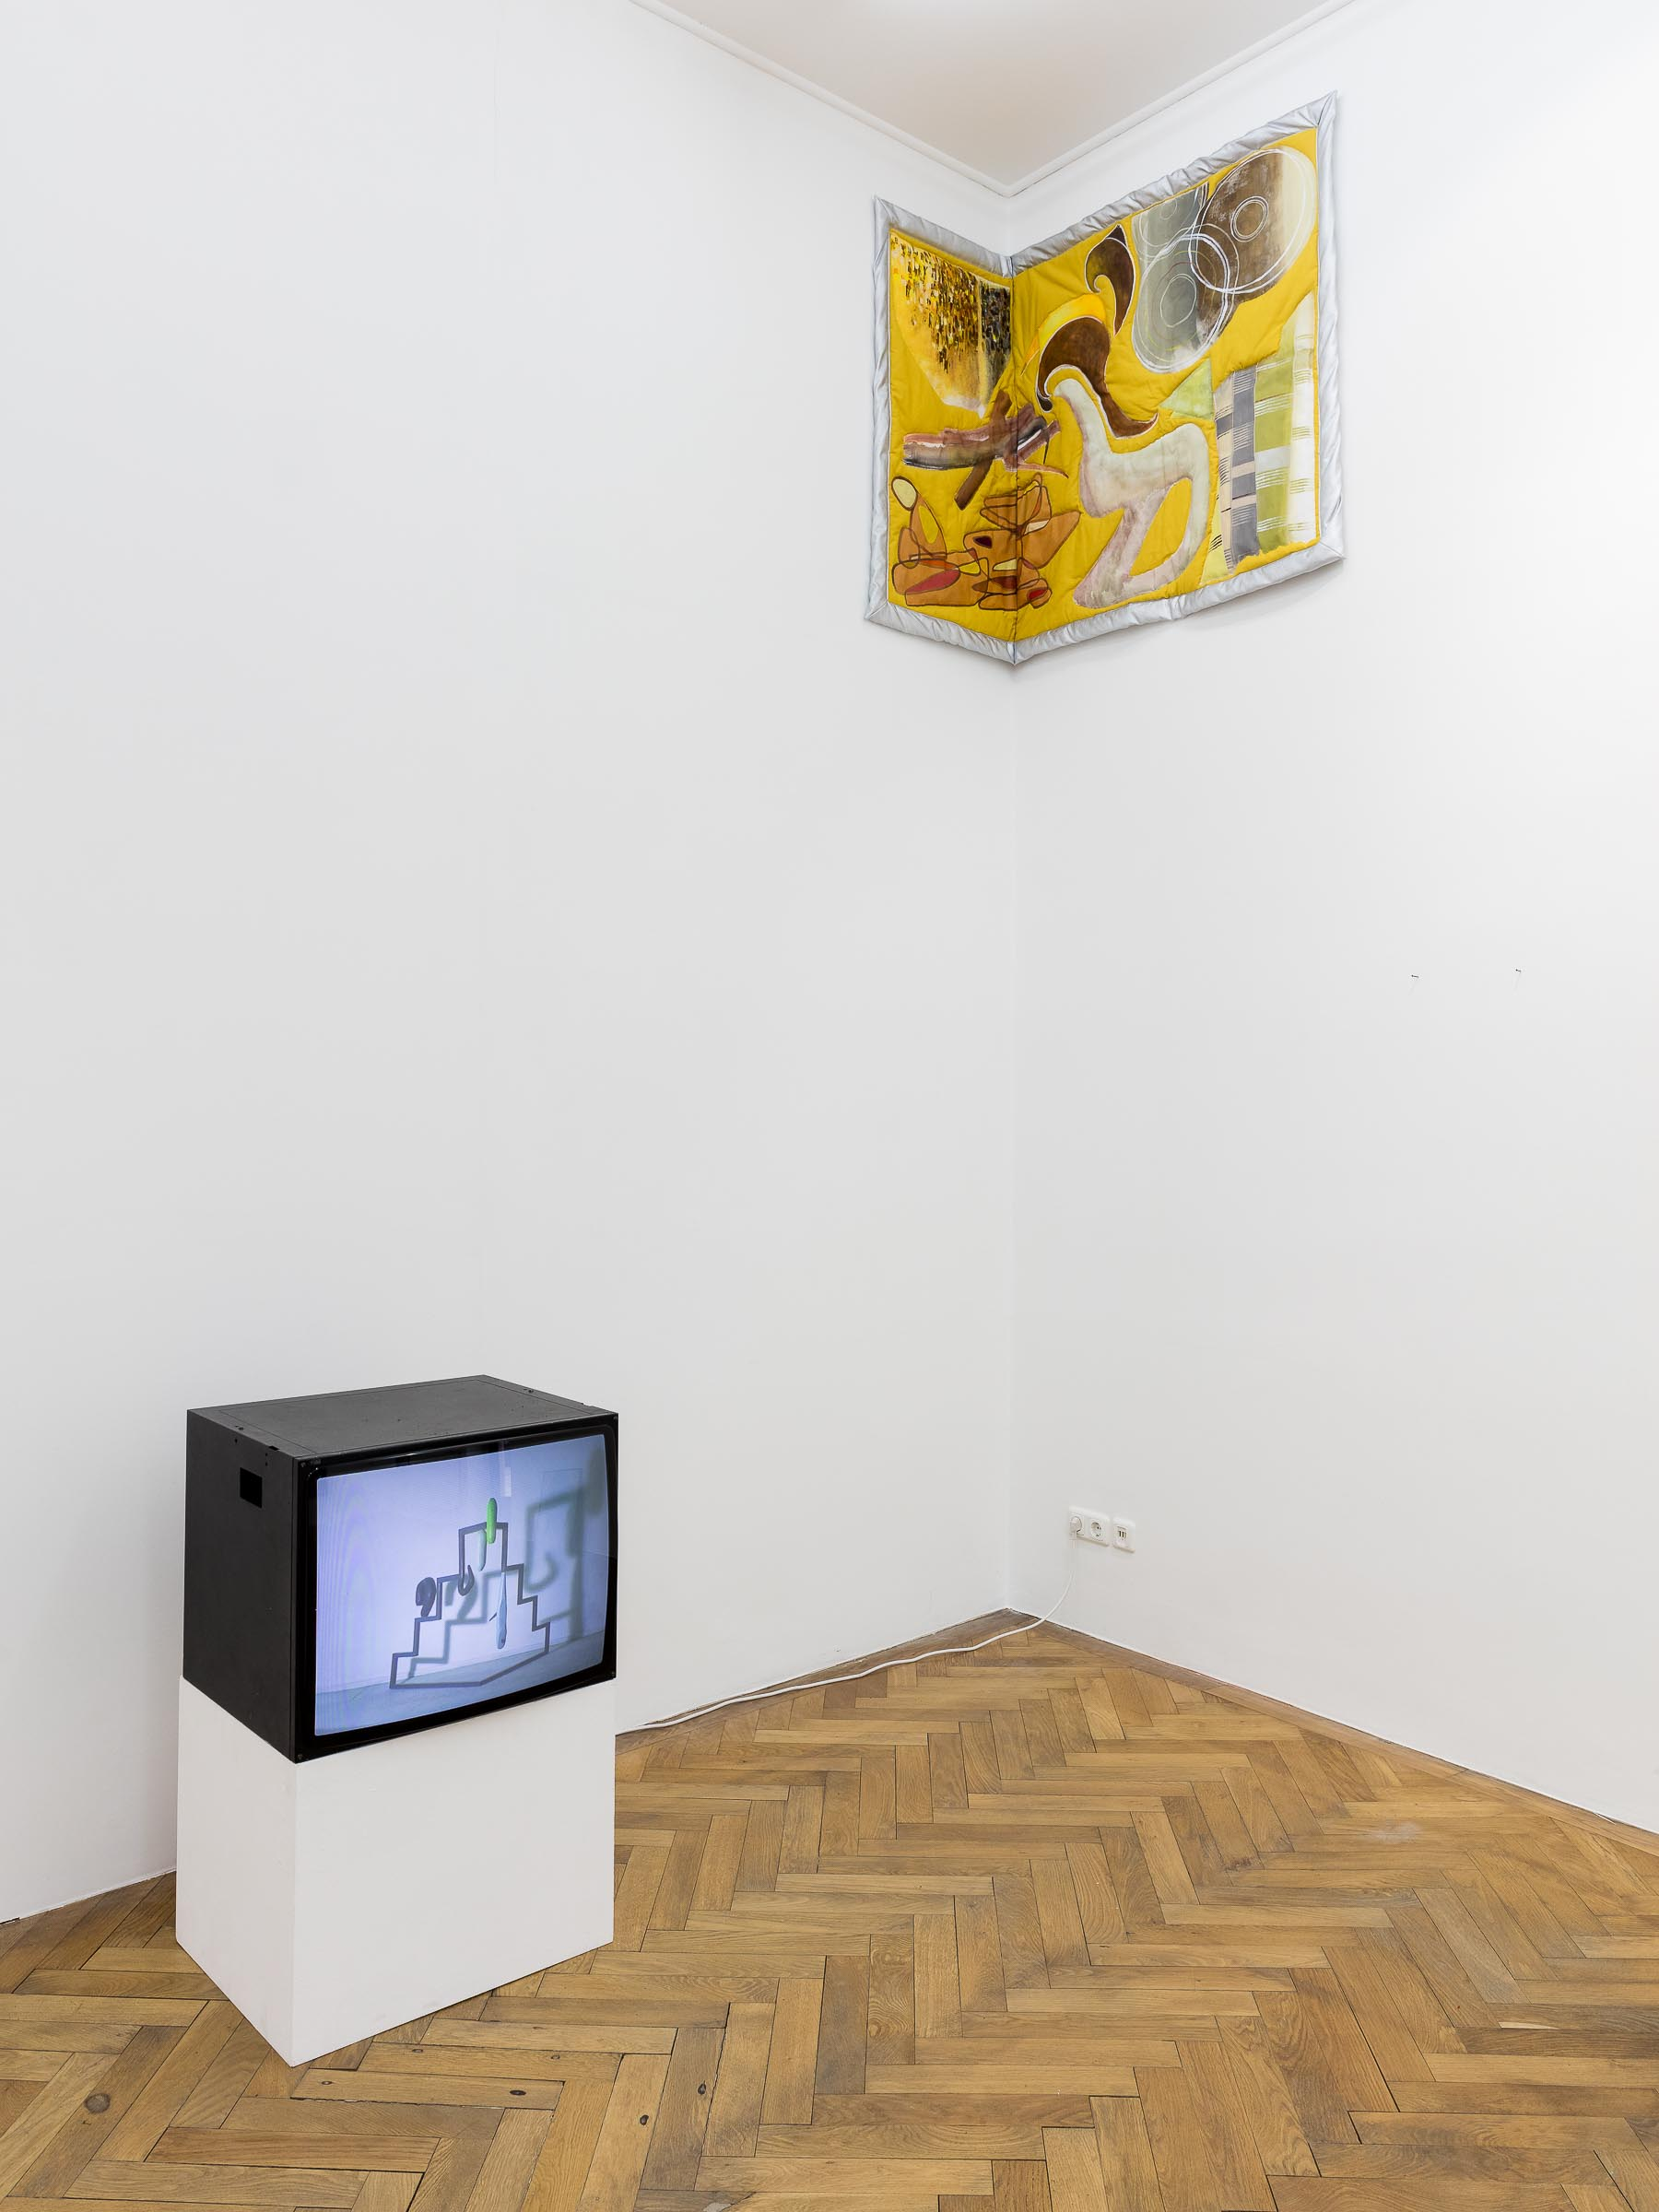 Exhibition View, TWO TO TANGO TWO, 2019, SPERLING